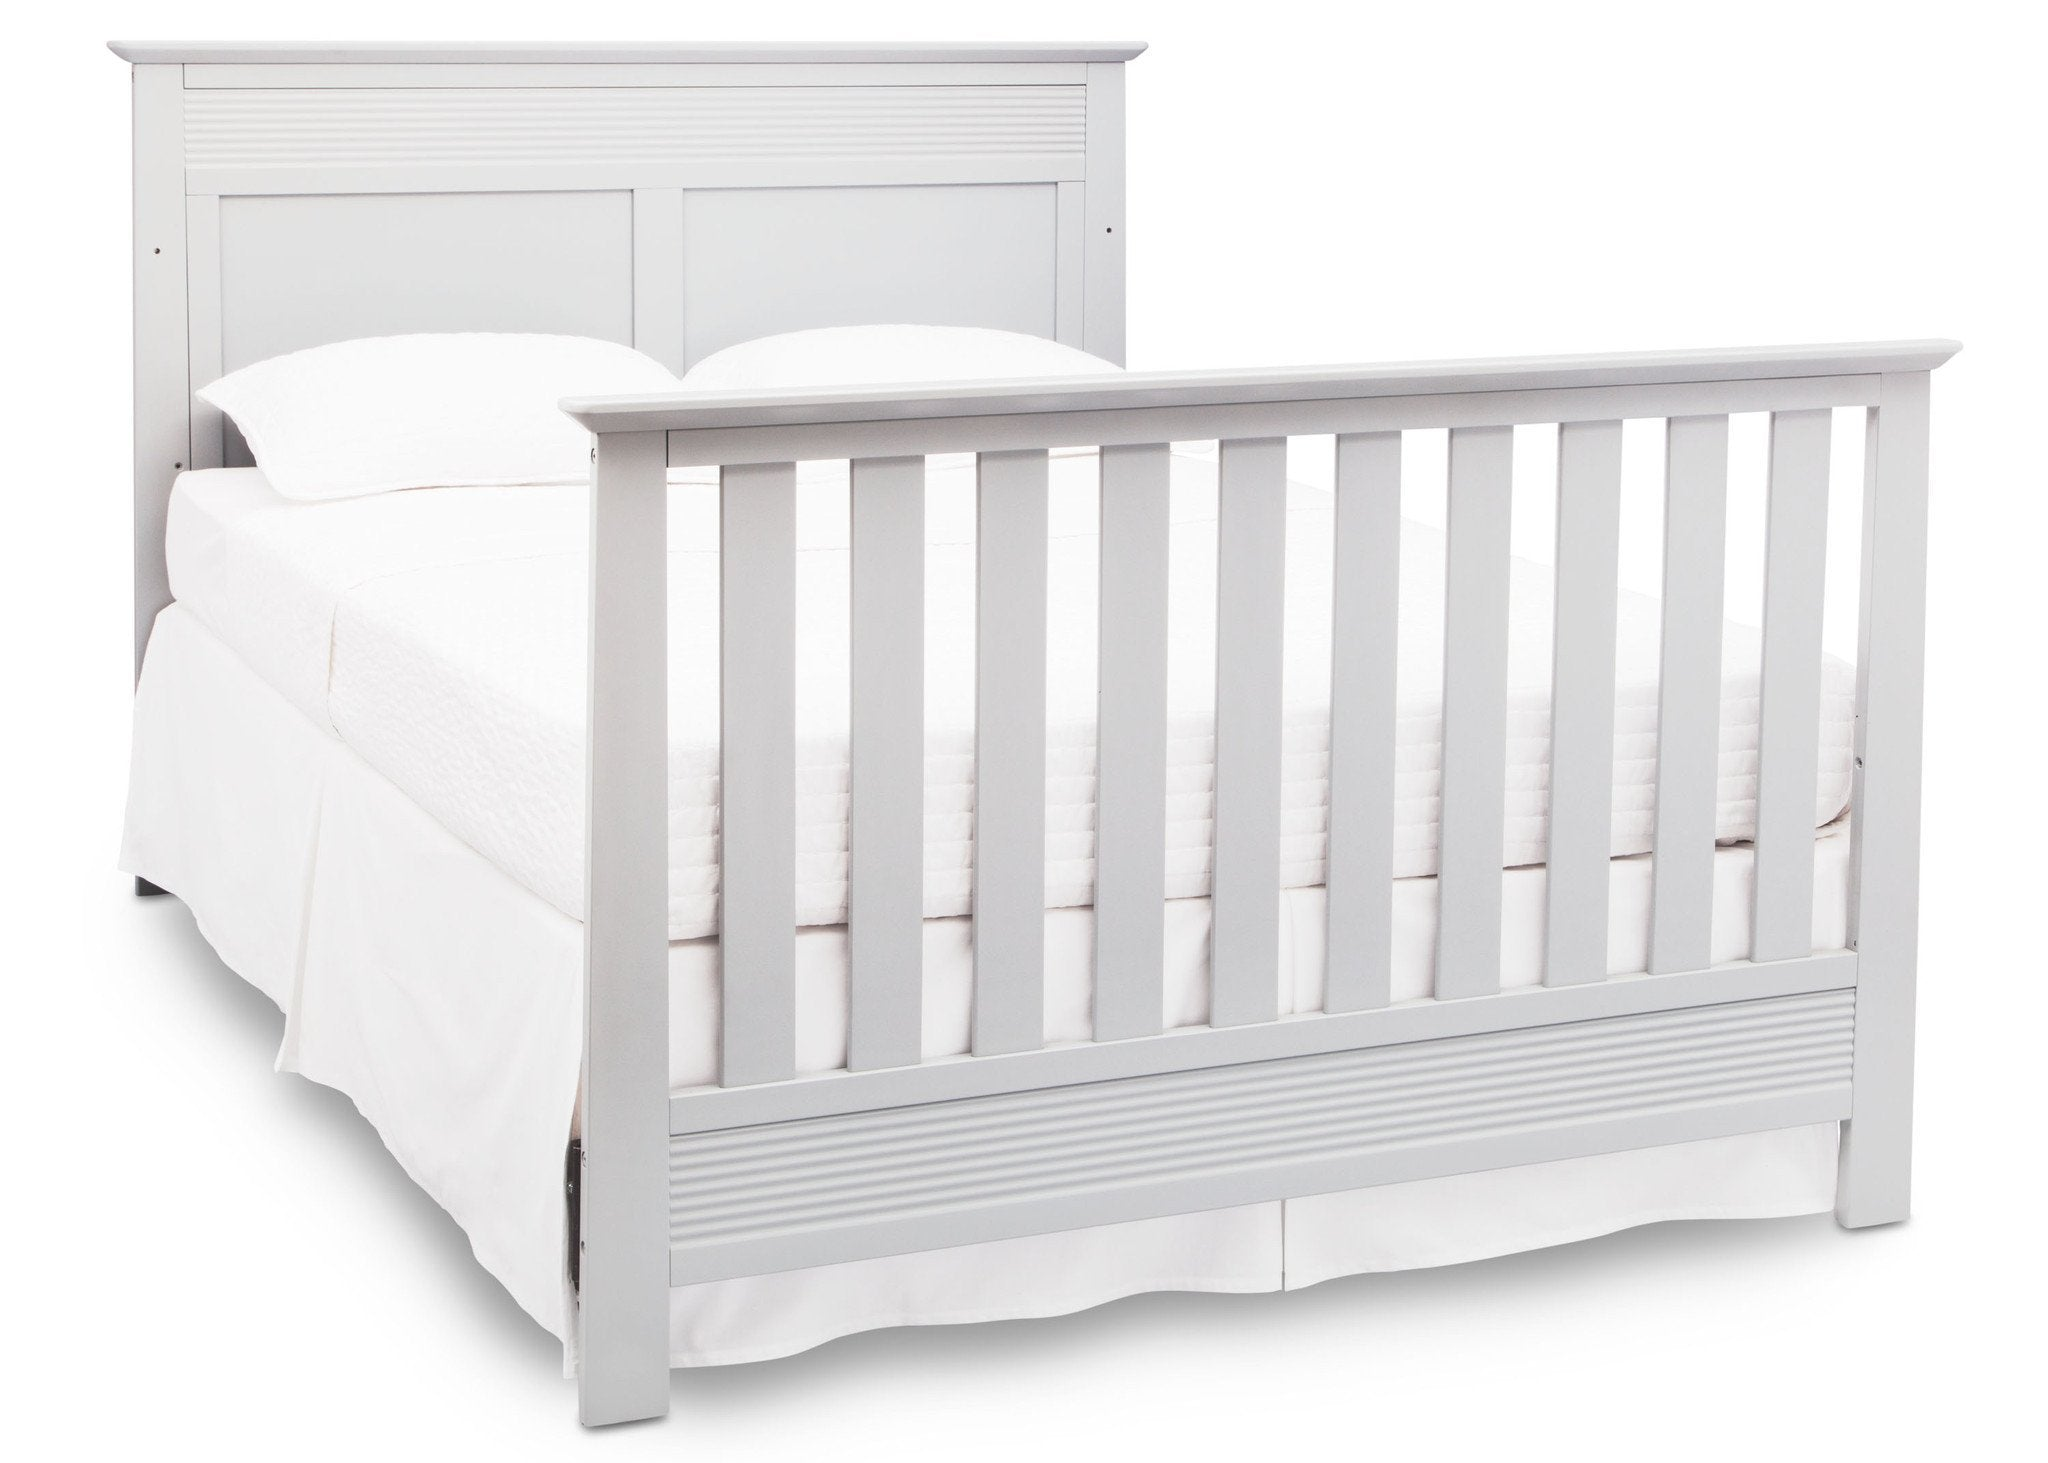 Serta Bianca White (130) Fall River 4-in-1 Convertible Crib, Right Full Bed View b5b